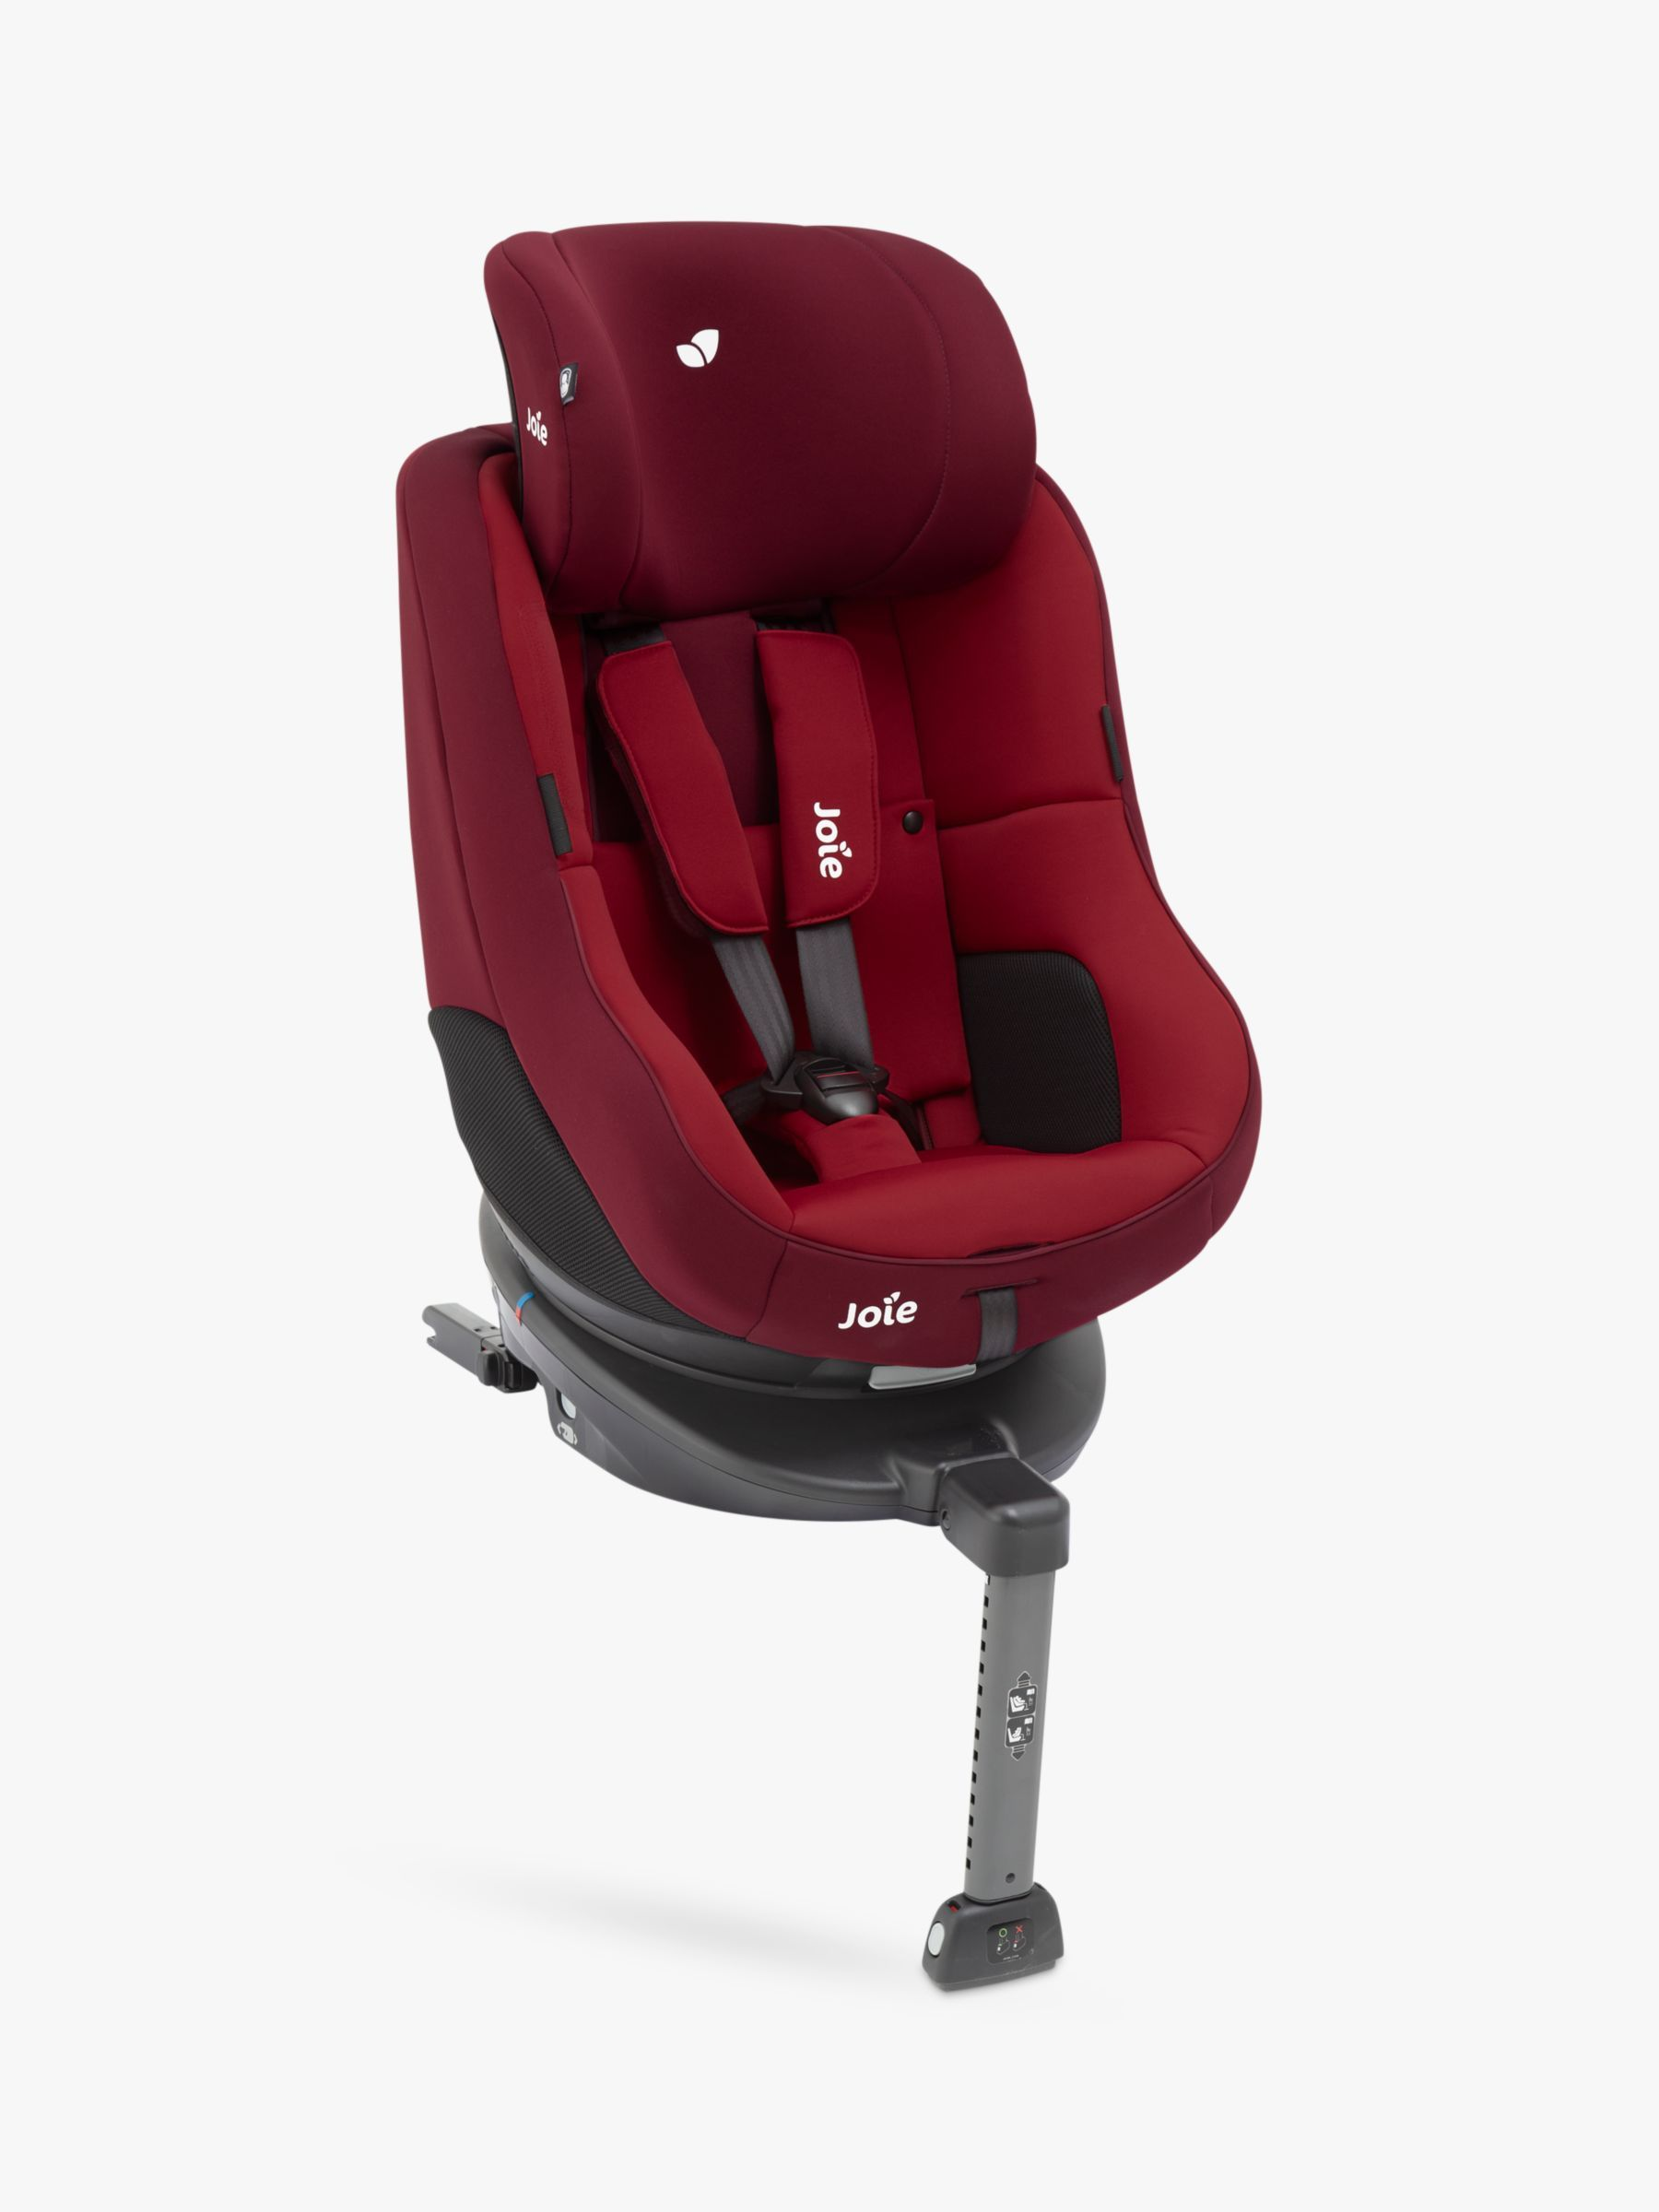 Joie Baby Spin 360 Group 0+/1 Car Seat, Merlot Car seats